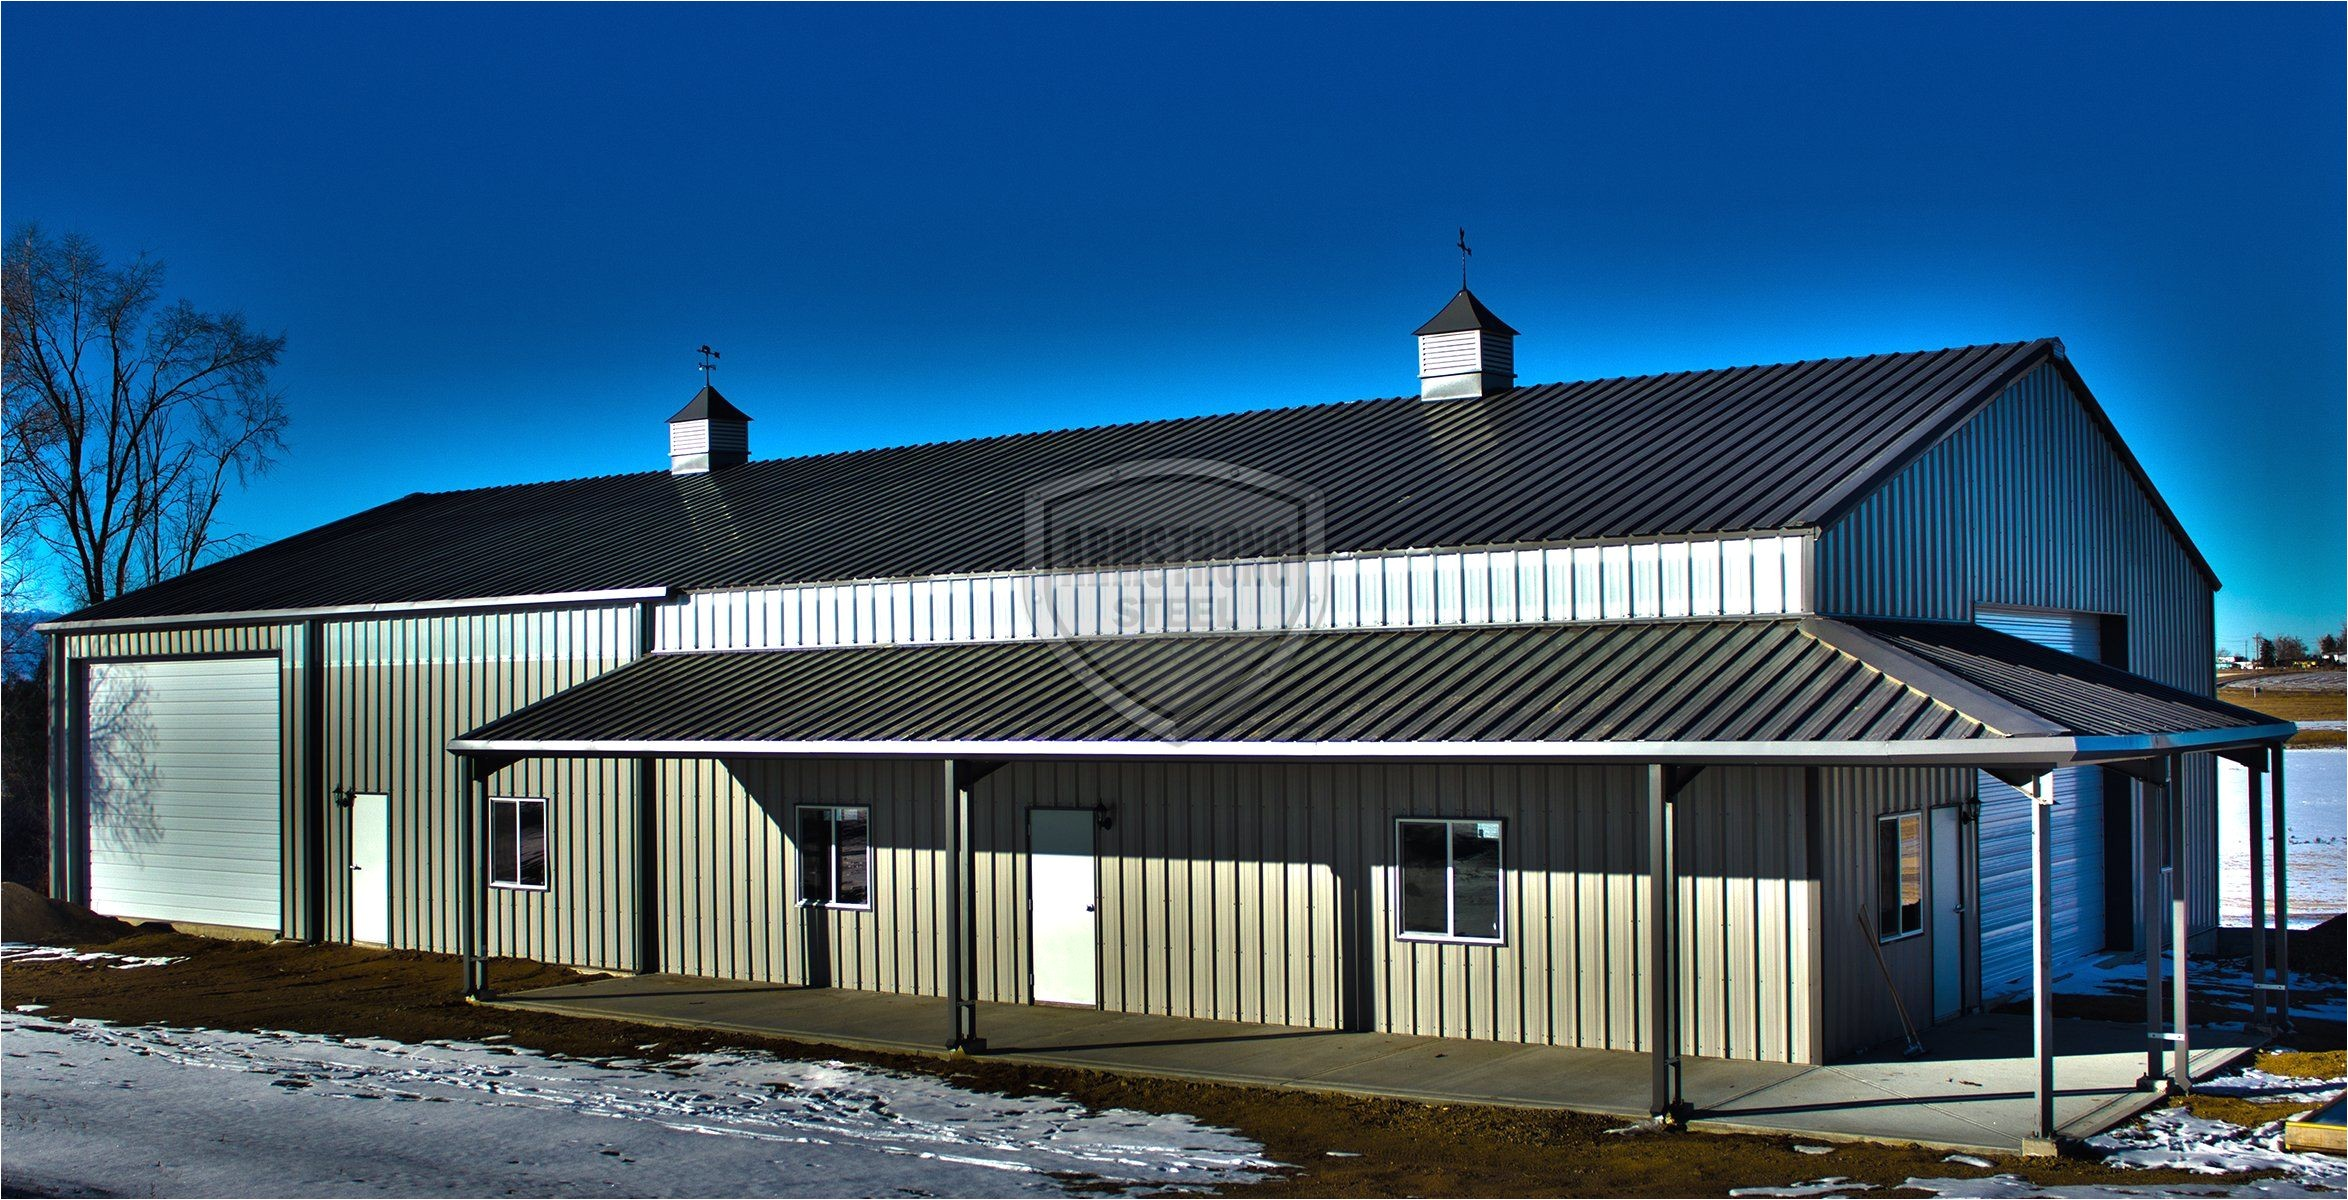 40 x 60 metal building metal buildings design ideas with curved